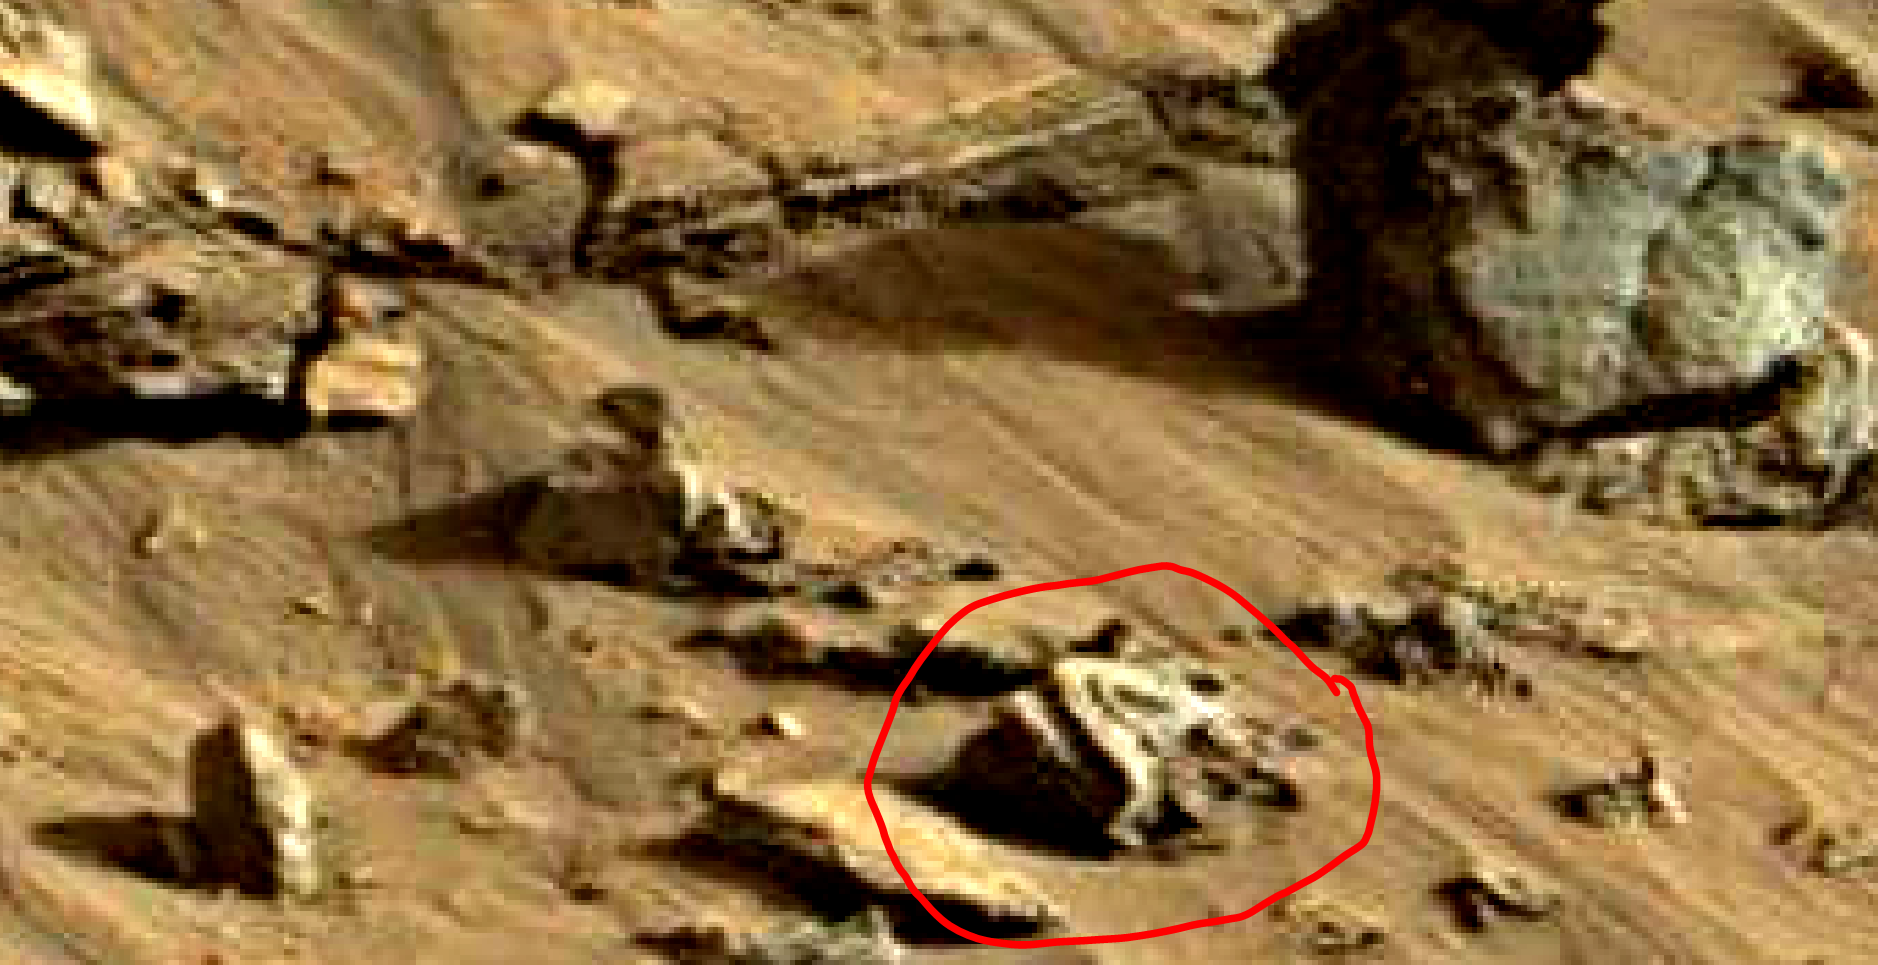 mars sol 1419 anomaly artifacts 10 was life on mars